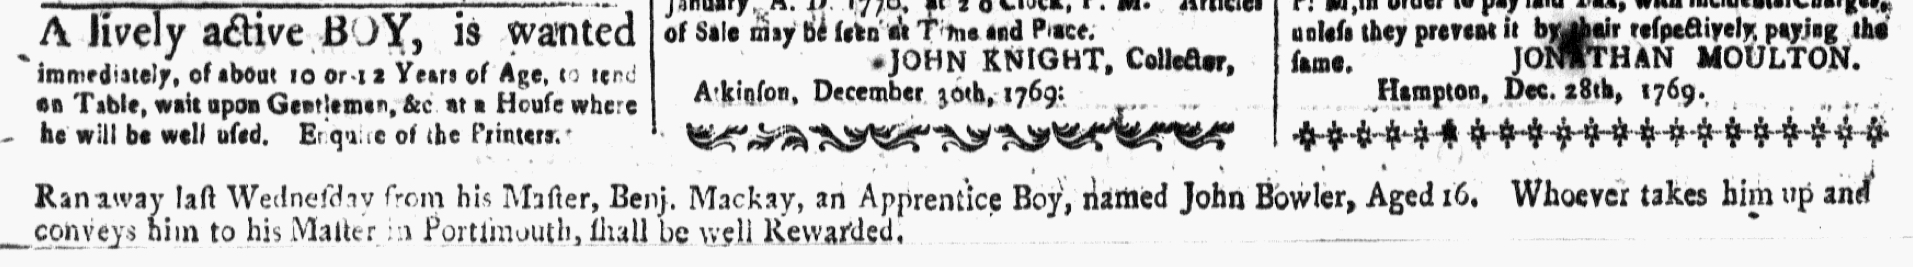 Jan 5 1770 - 1:5:1770 New-Hampshire Gazette